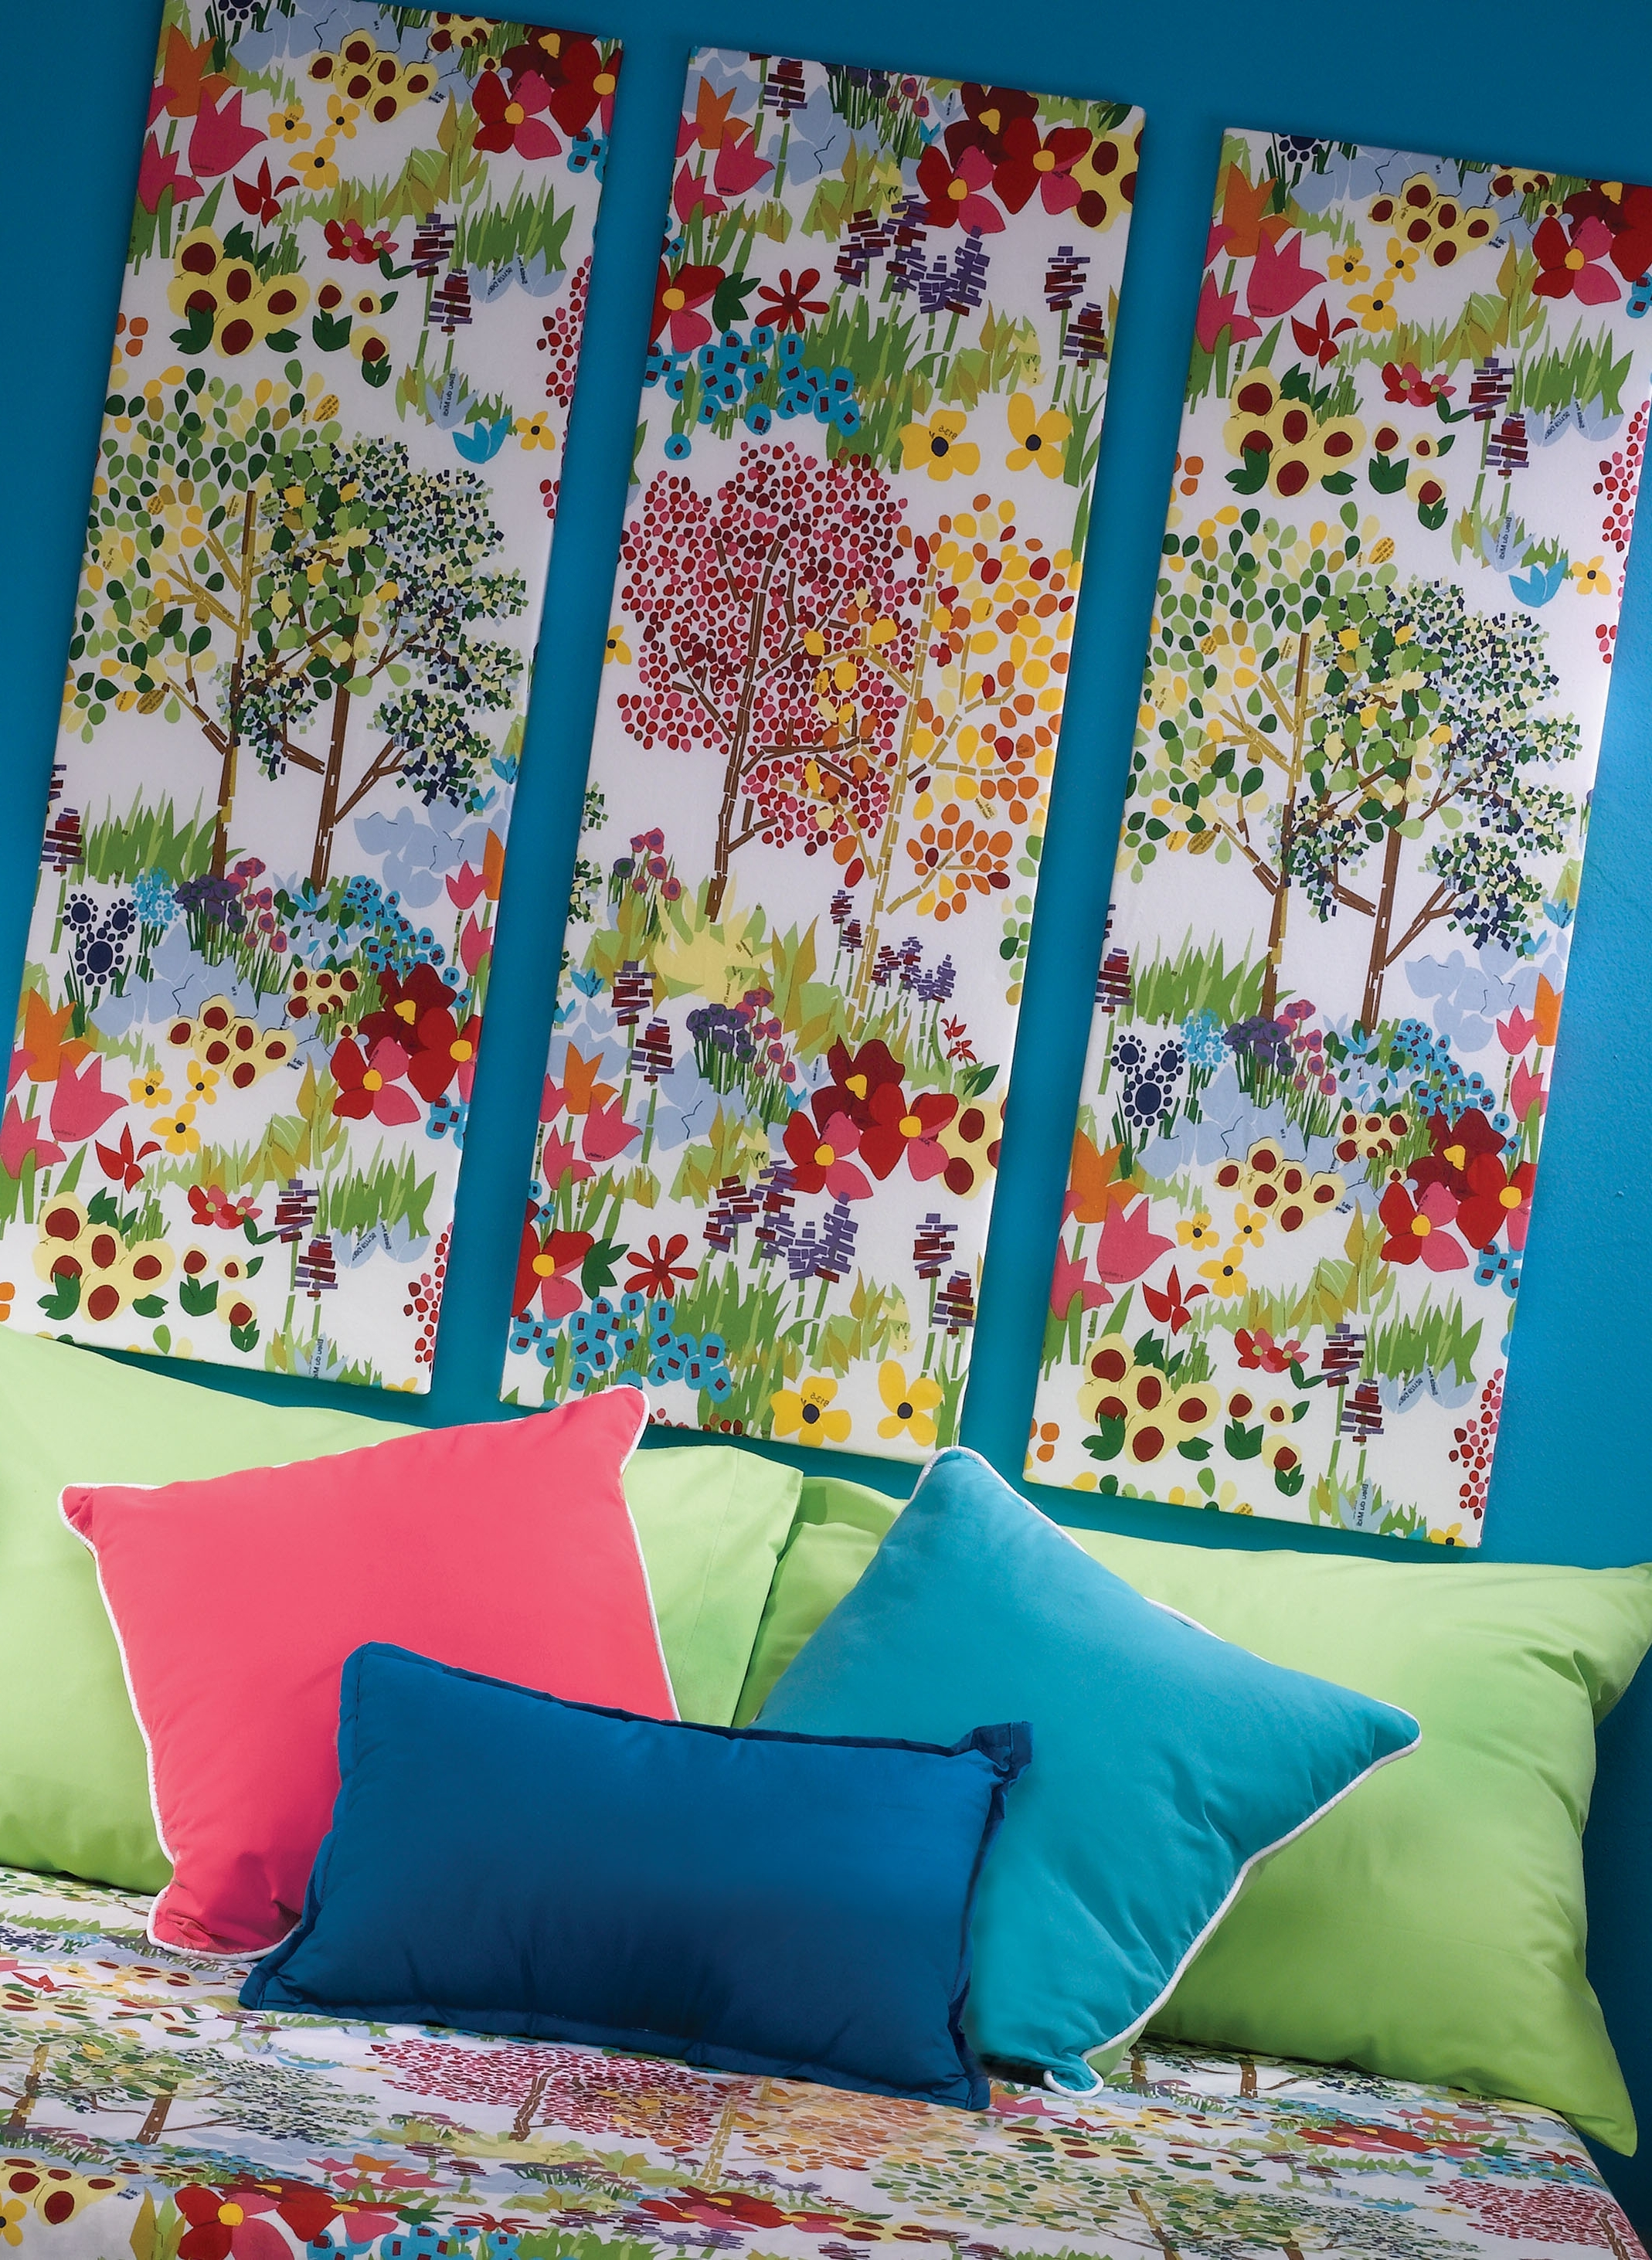 Fashionable Diy Wall Art. Cover Styrofoam In Fabric (View 2 of 15)